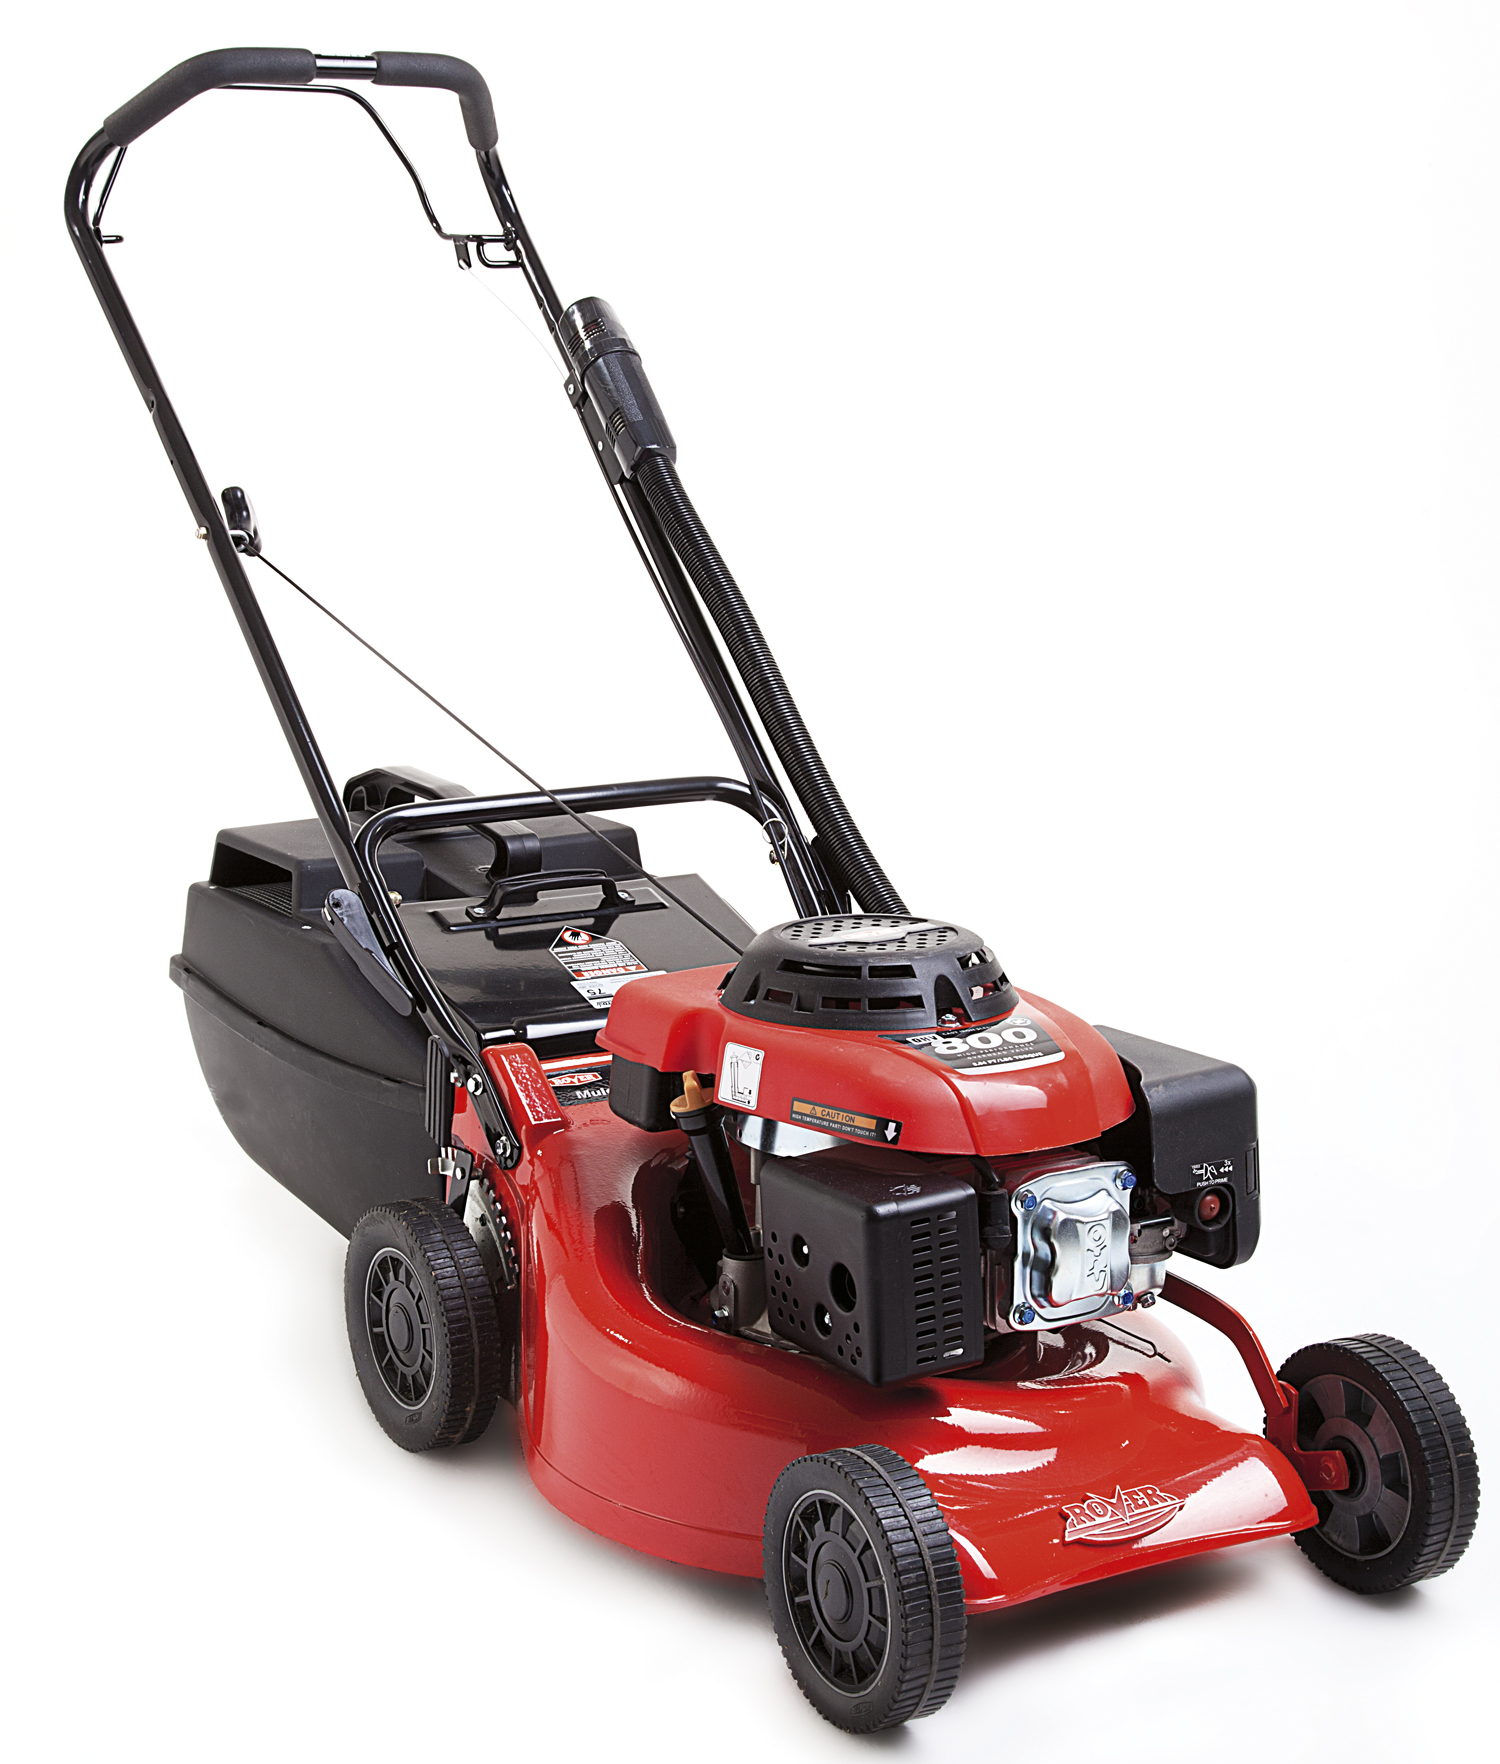 Icon Lawn Mower Free #14734.